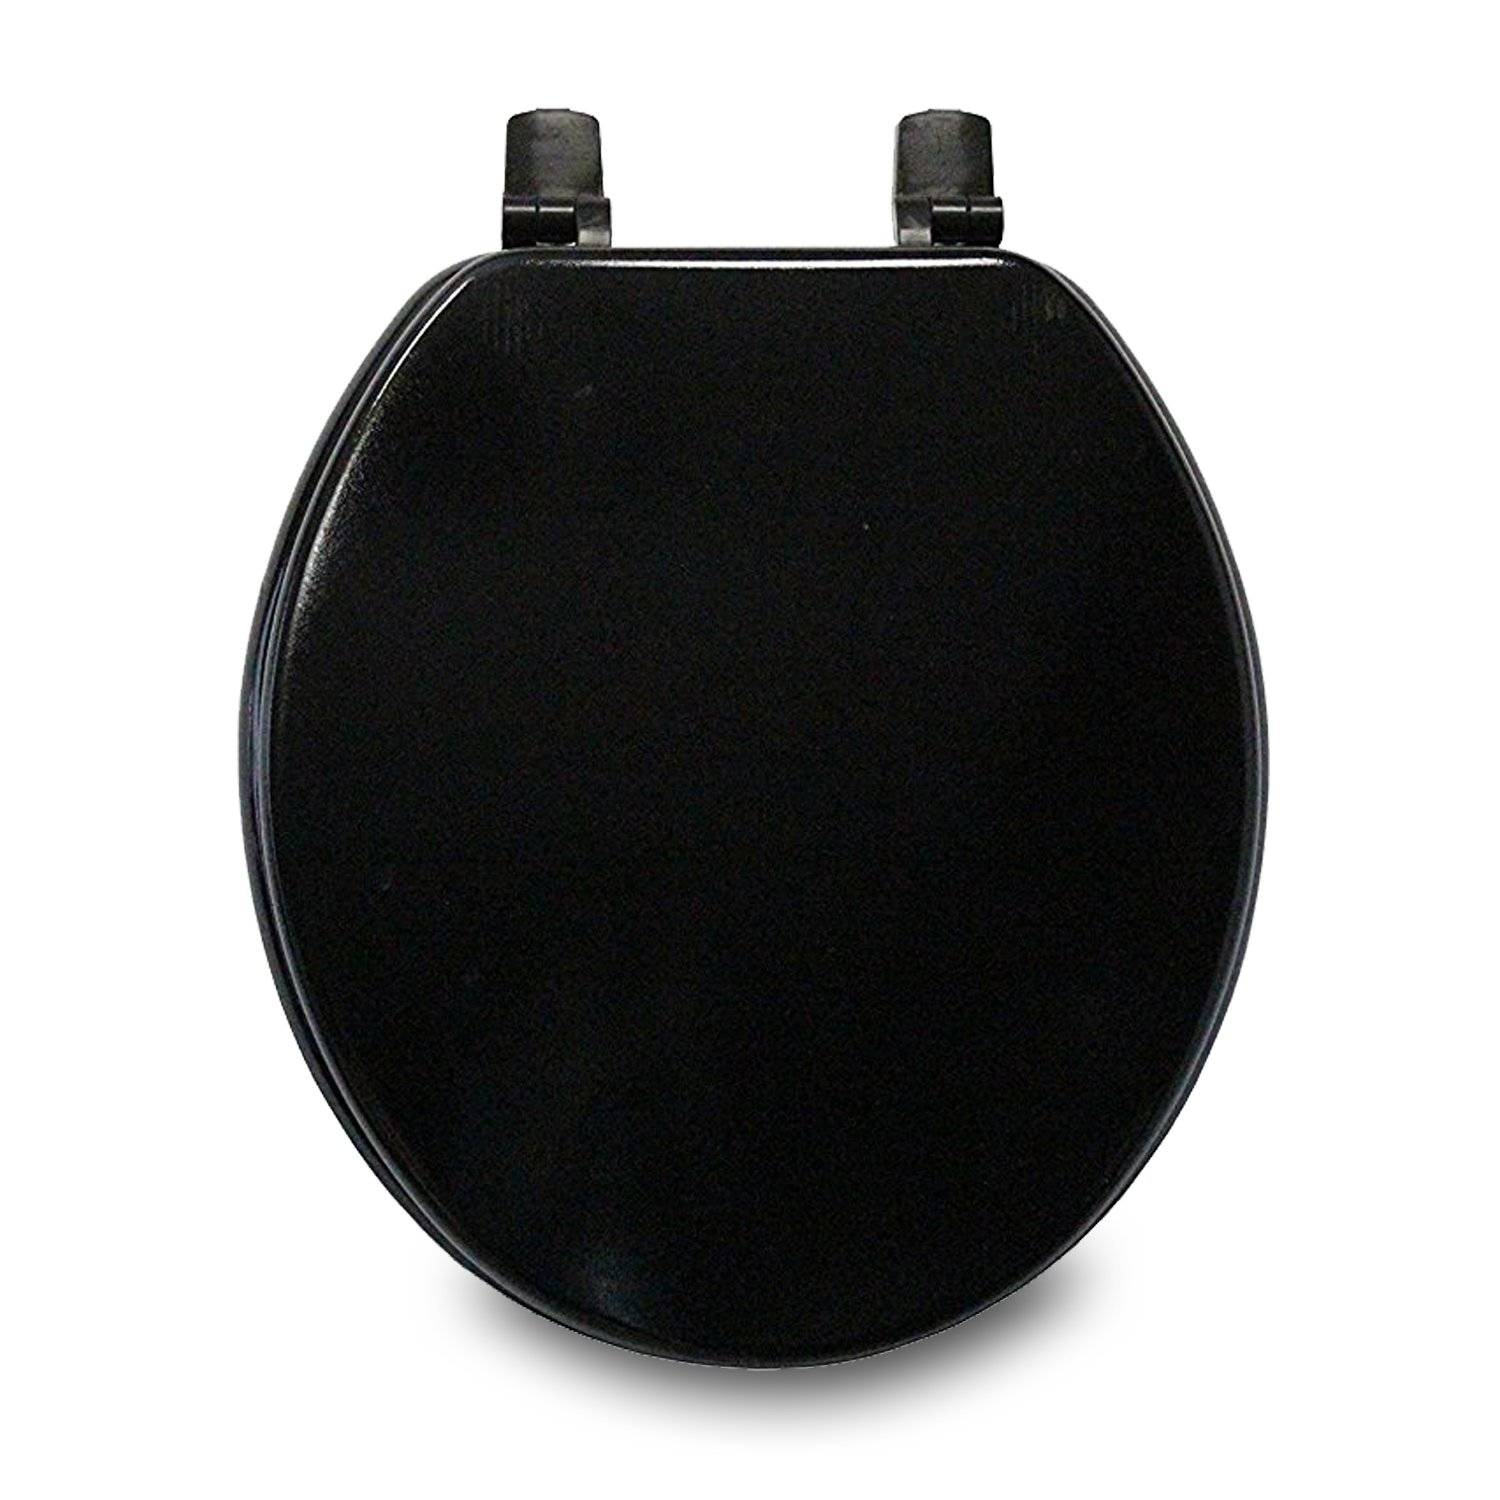 Trimmer Molded Wood Solid Toilet Seats - Black